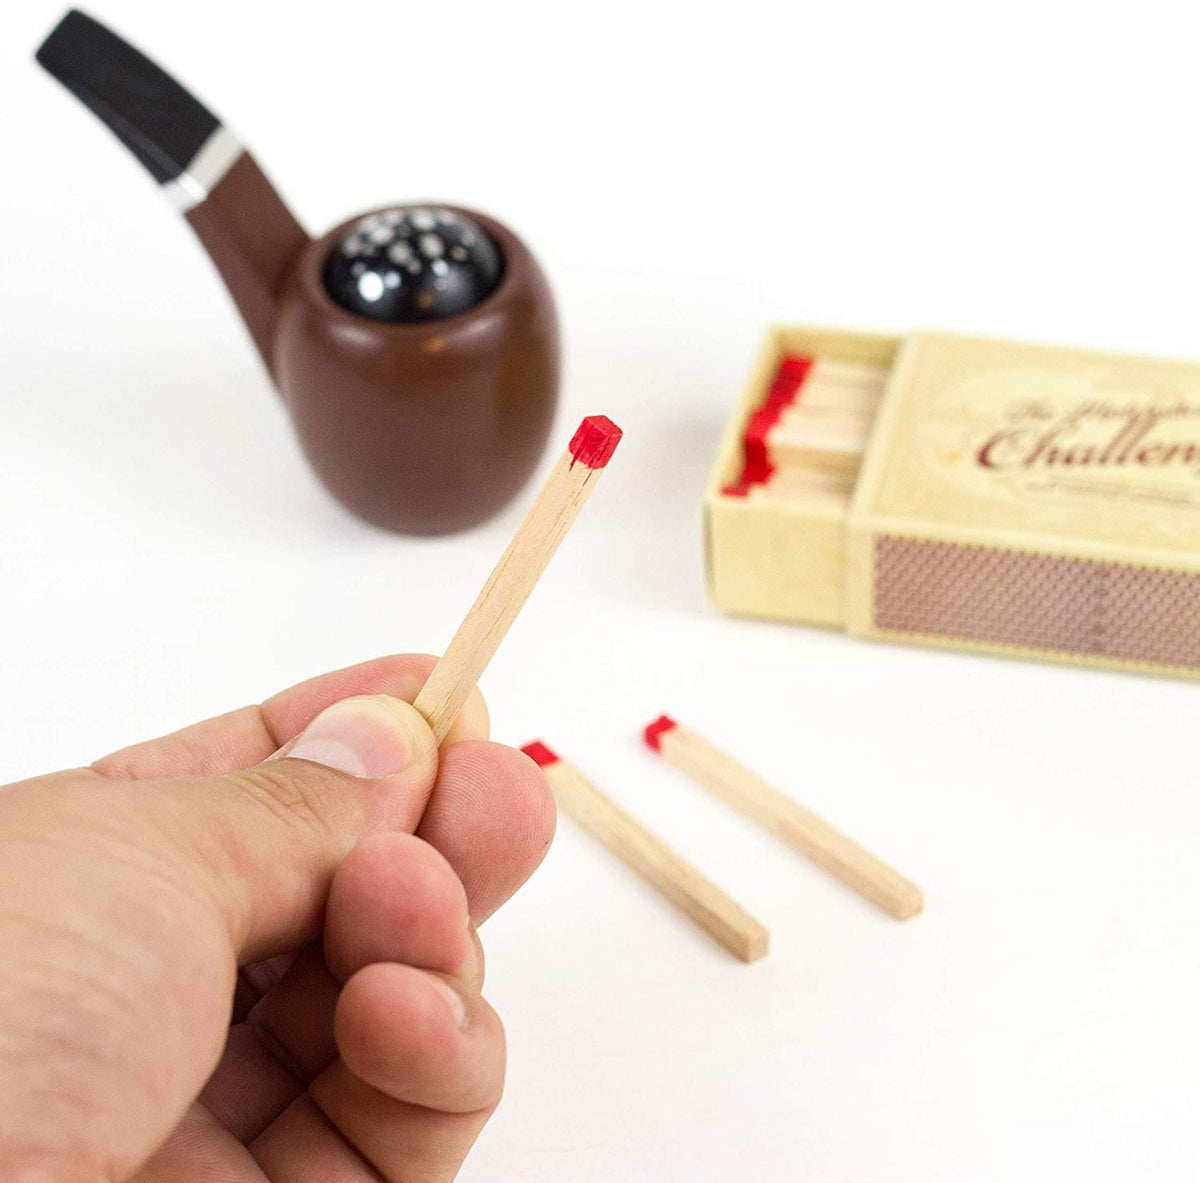 Sherlock Holmes: The Case of the Smoking Pipe (Matchstick Challenges)